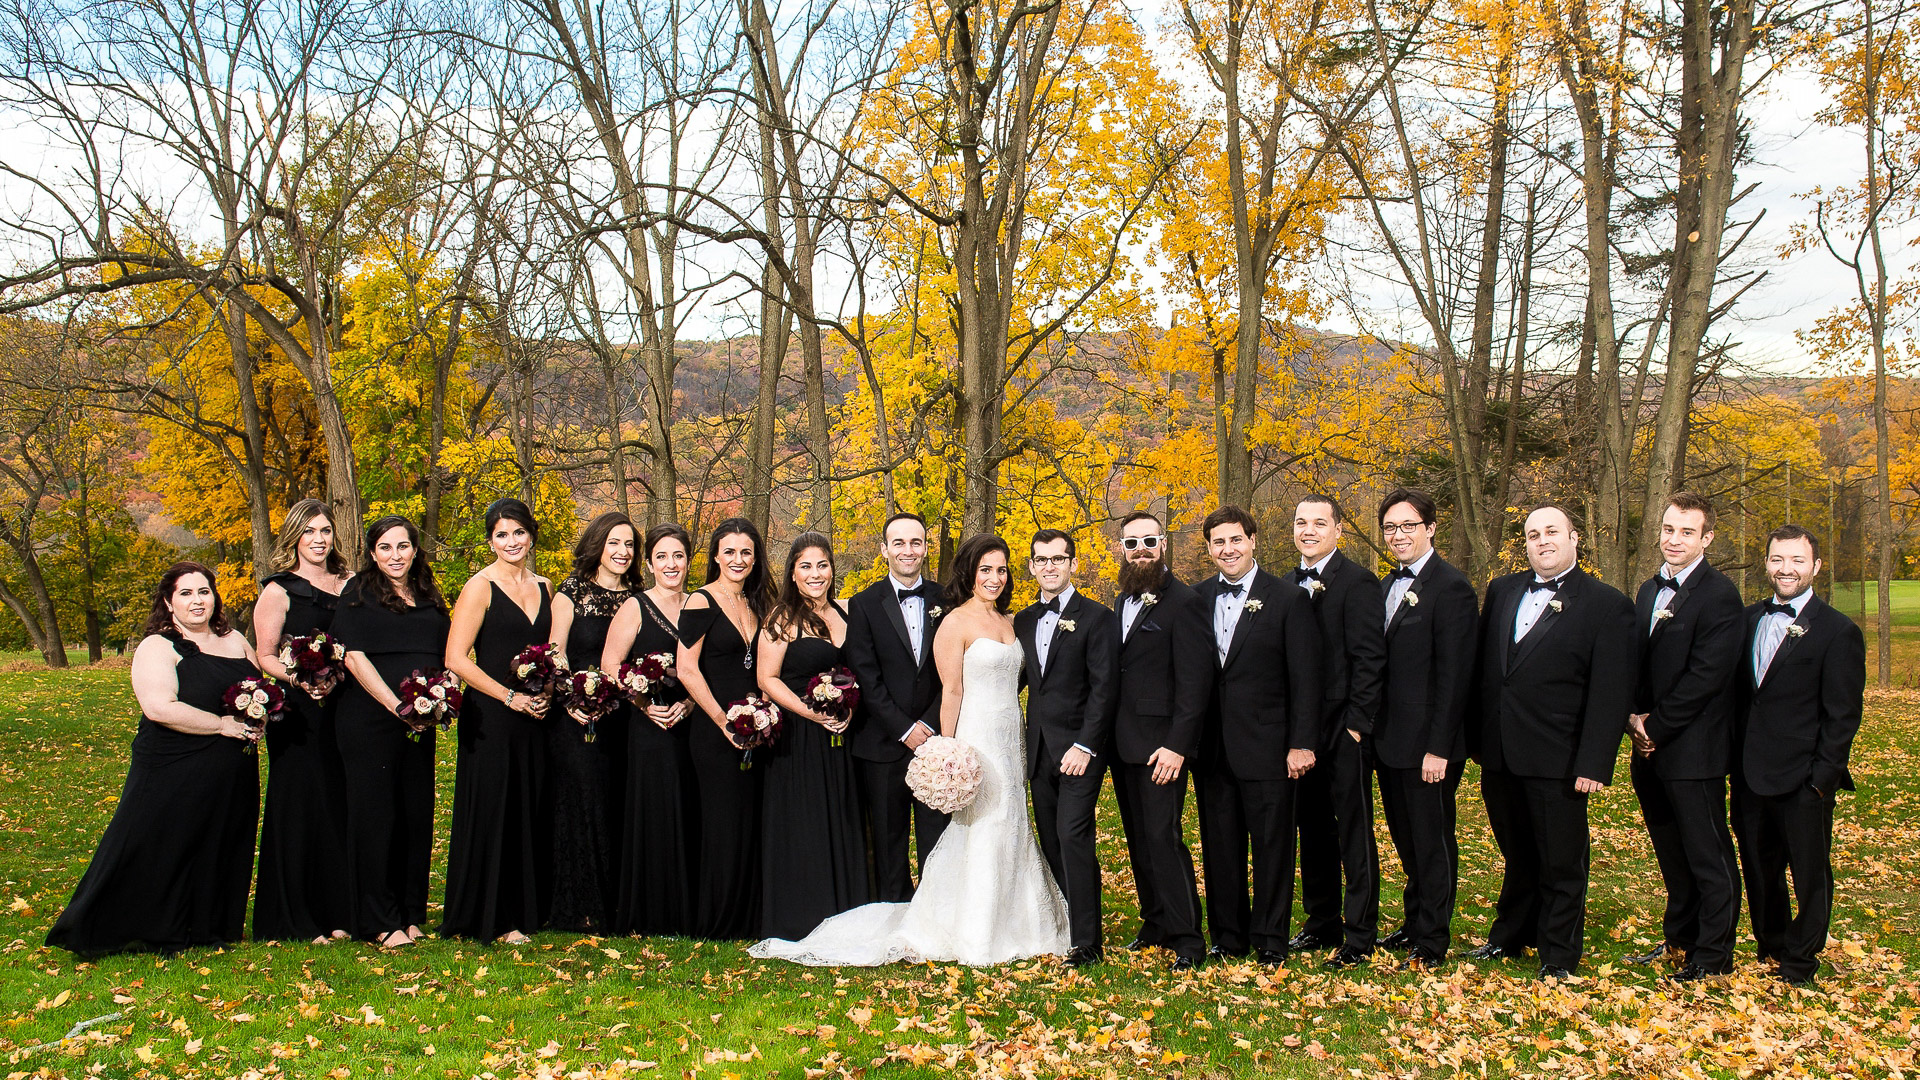 paramount country club wedding bridal party formal photo